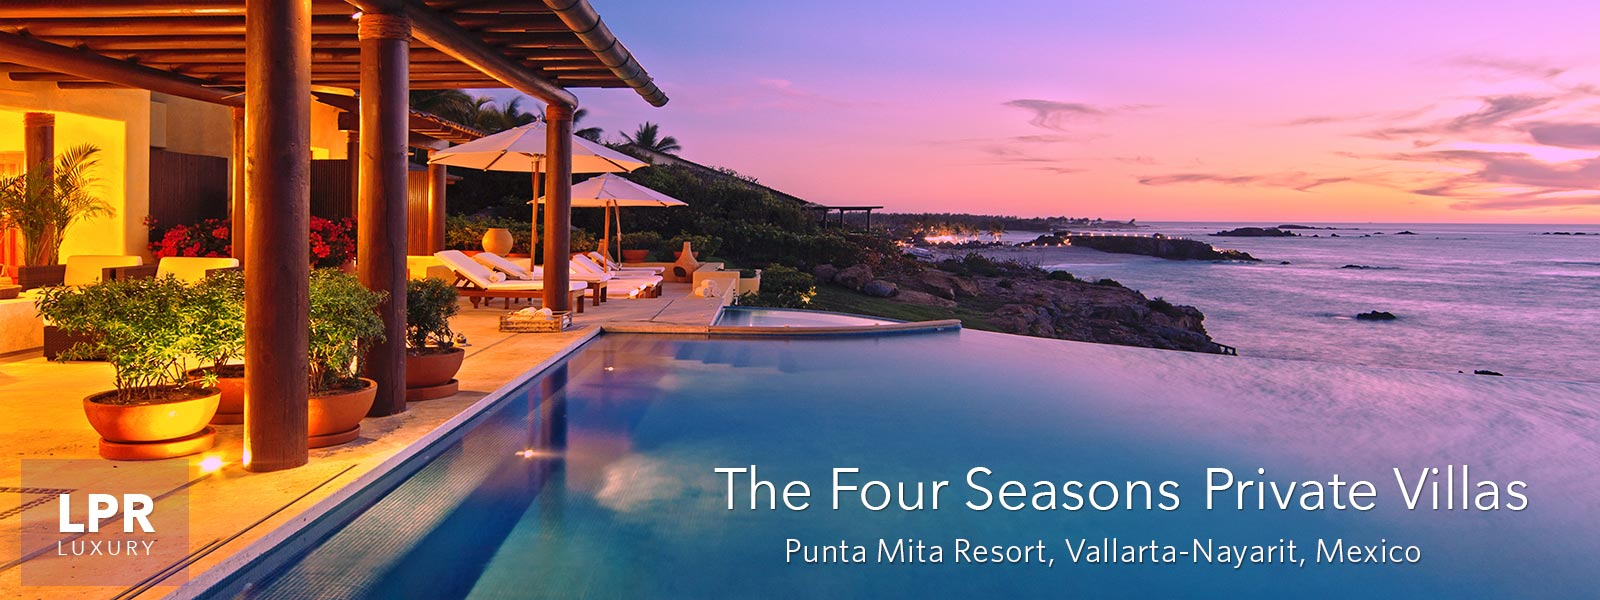 Four Seasons Private Villa 14 - Punta Mita Resort, Mexico